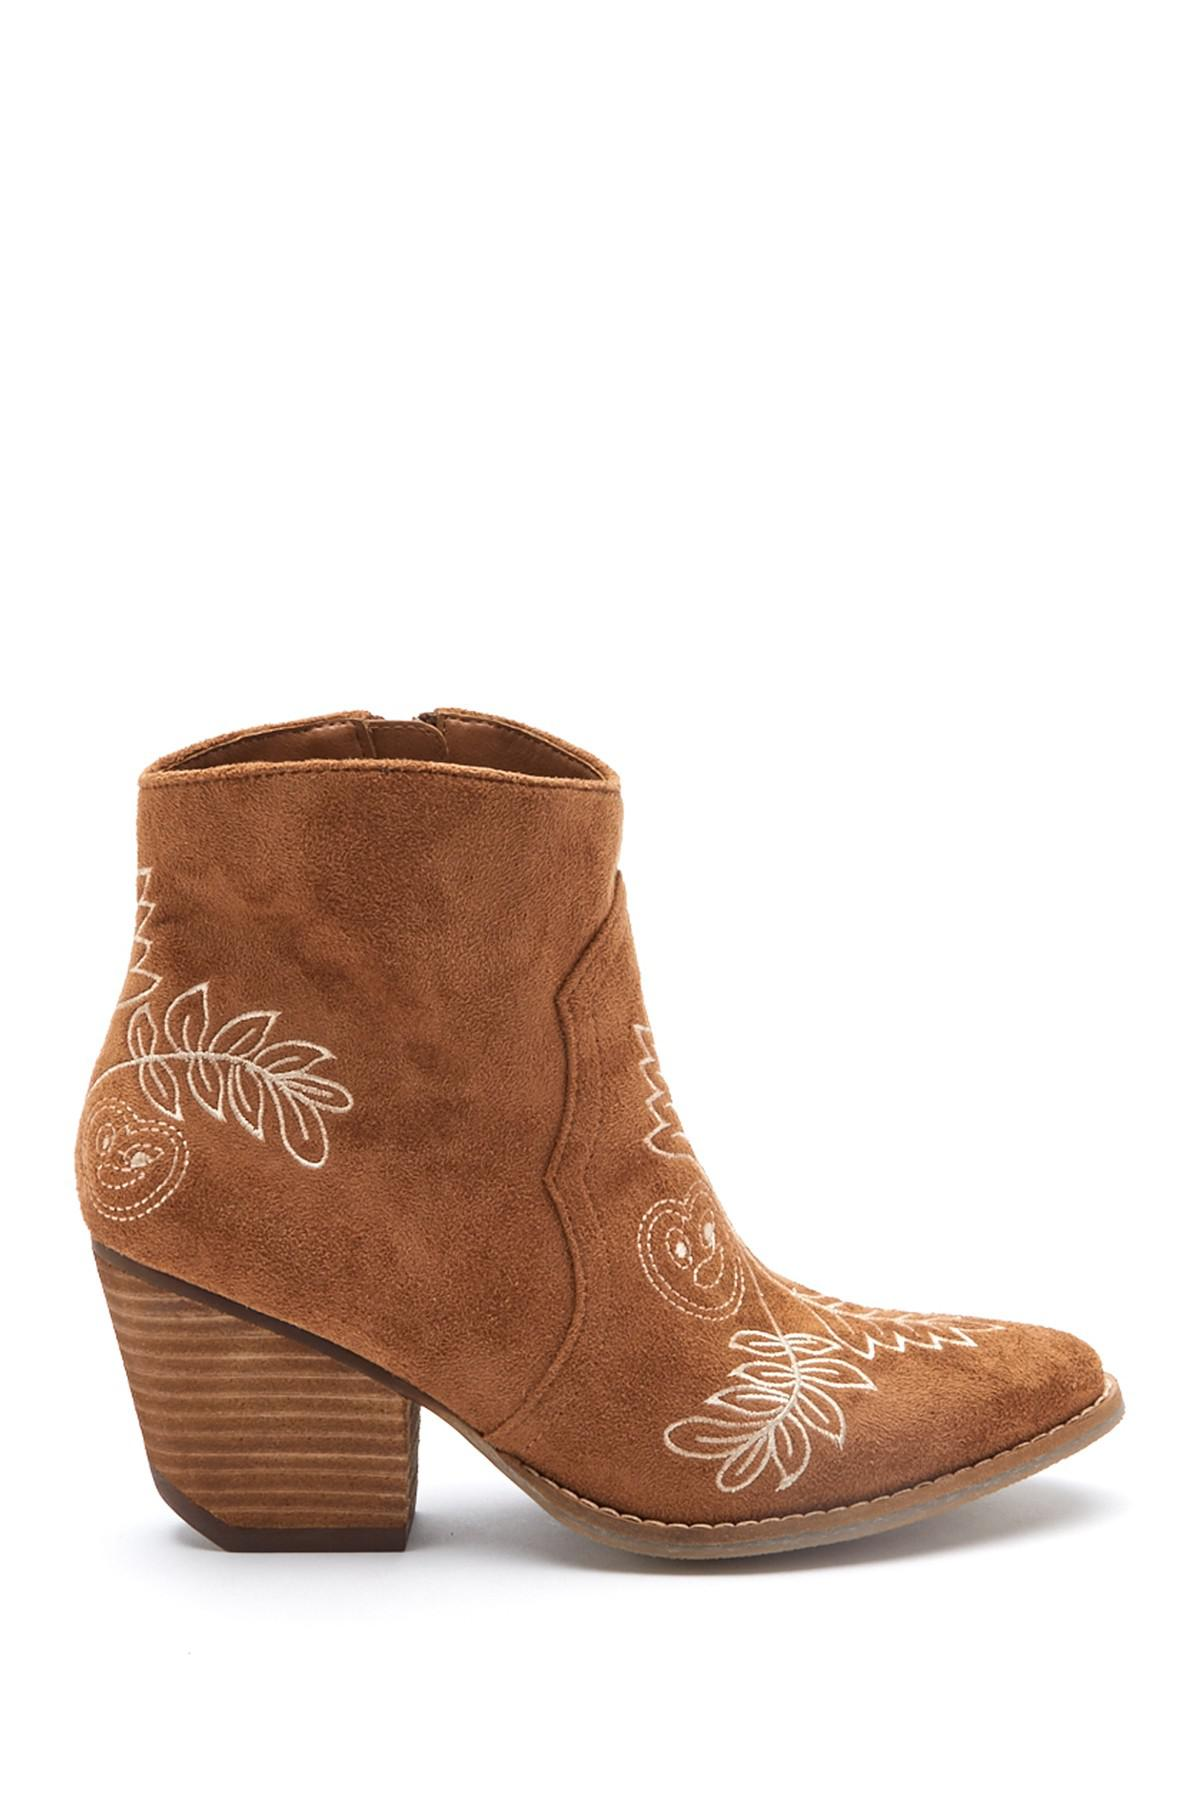 Matisse Axis Suede Embroidered Bootie WgwMO95